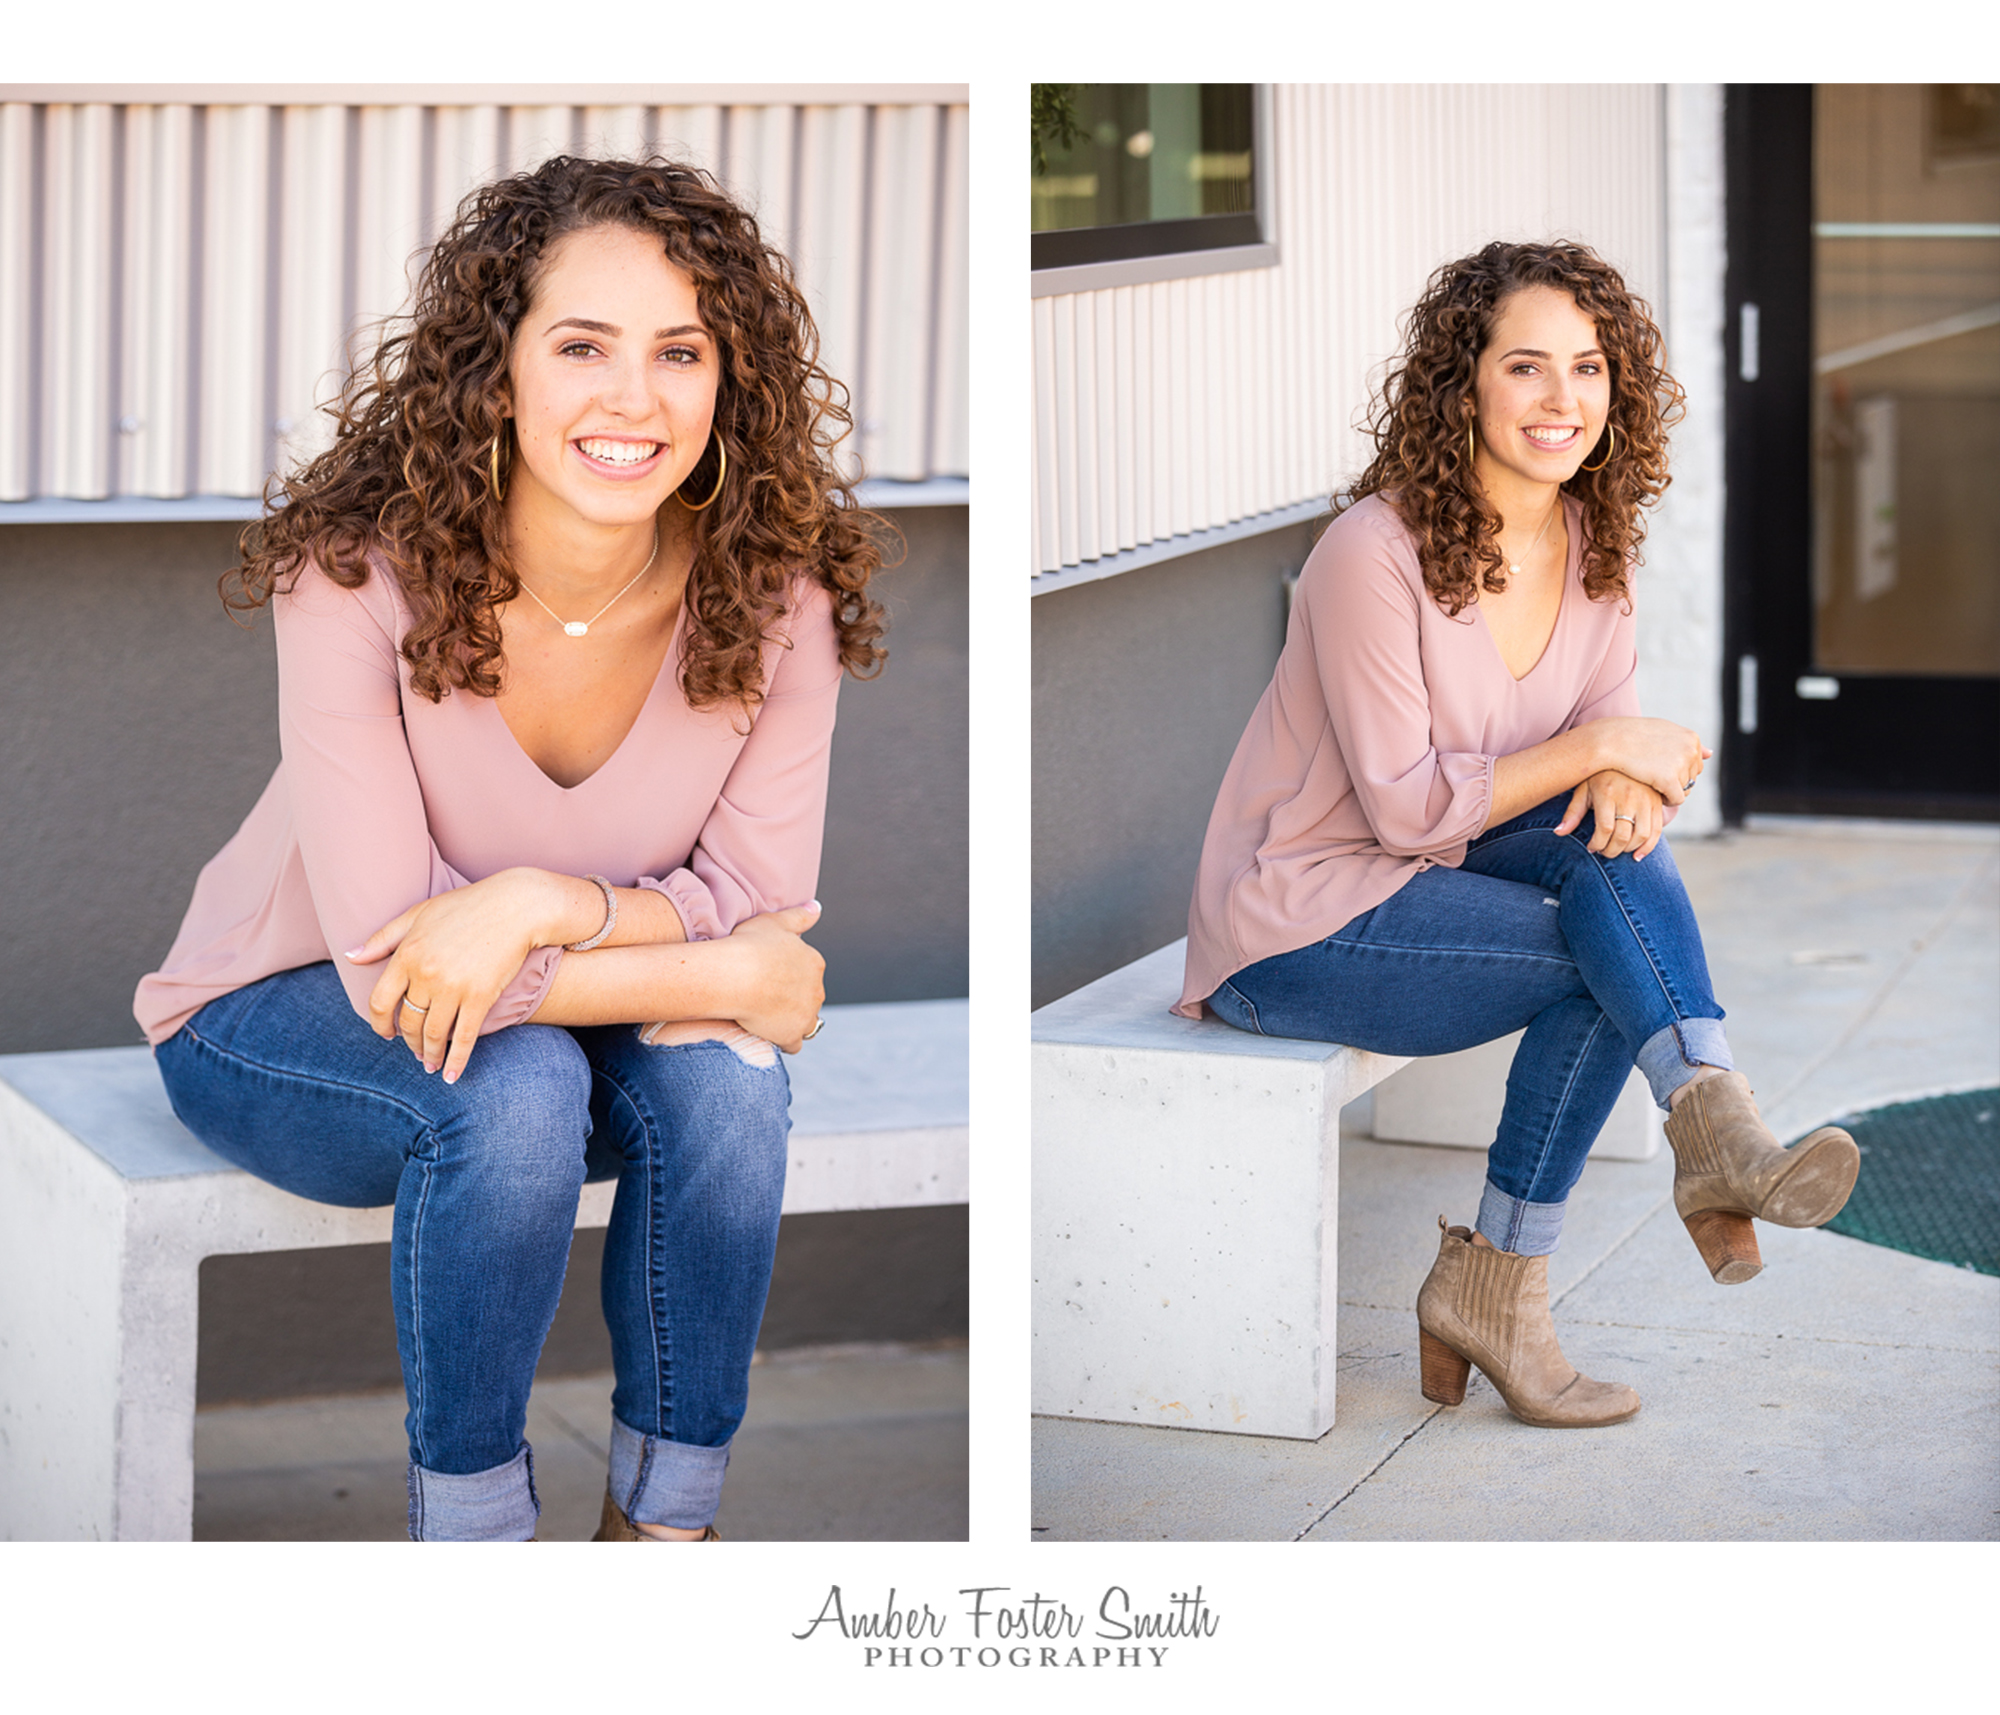 Amber Foster Smith Photography - Apex High School Senior Photographer